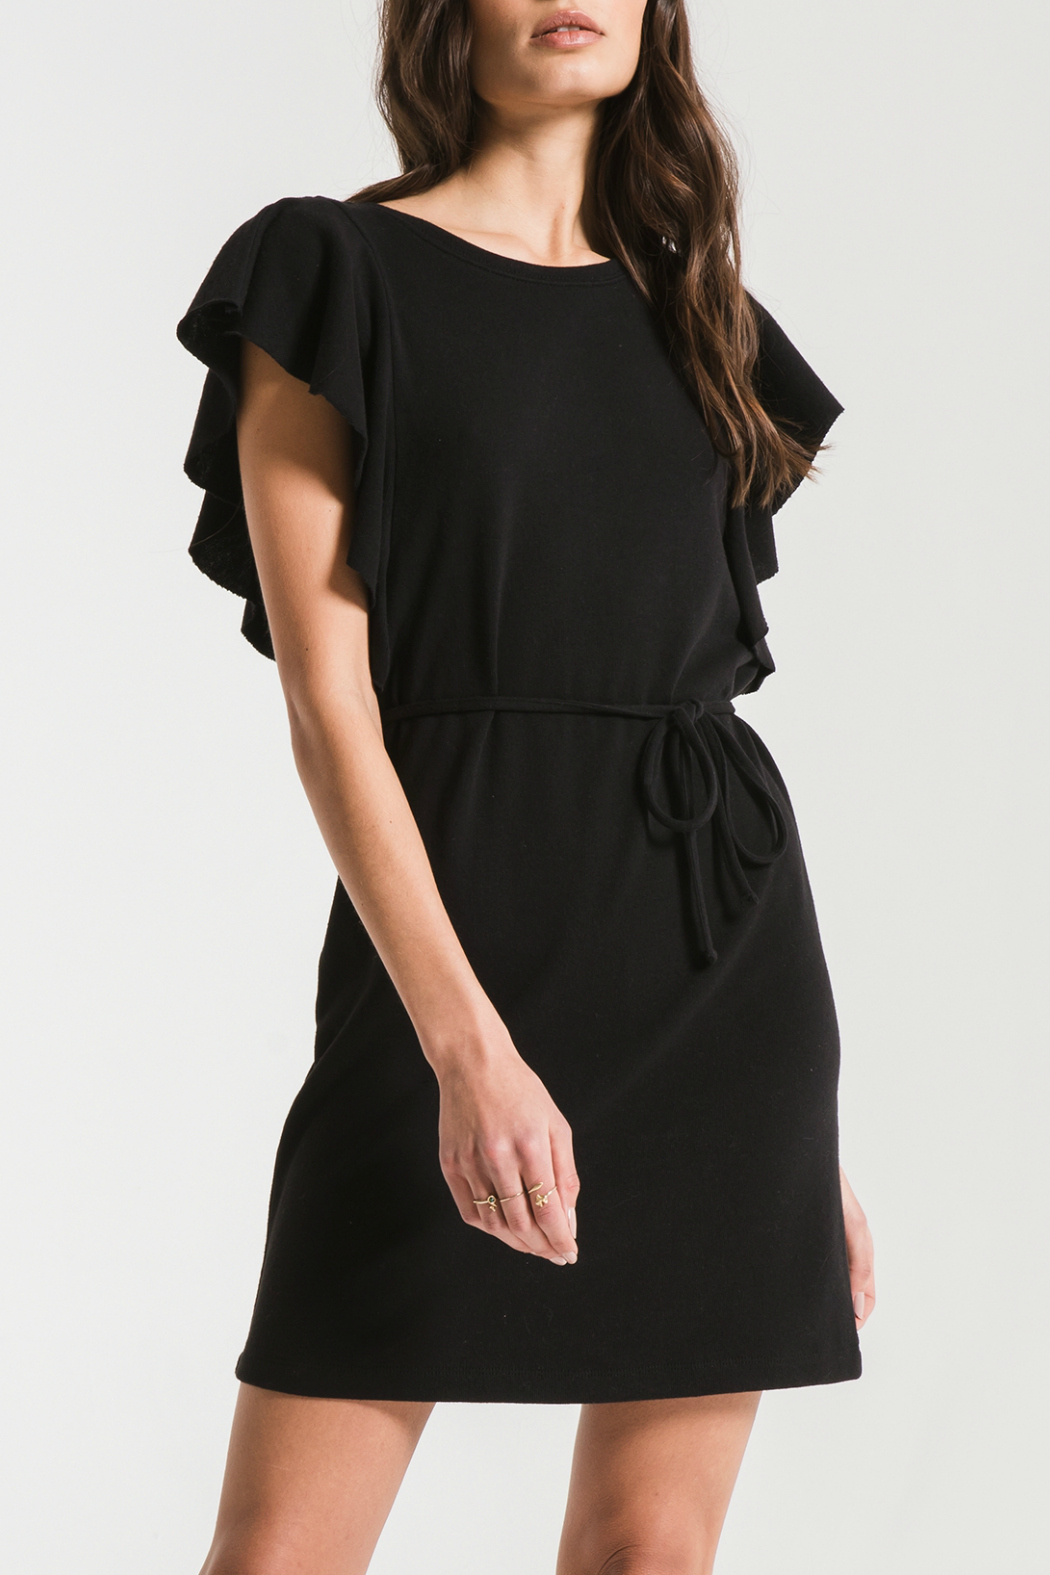 z supply Cap Ruffle Sleeve Dress - Main Image